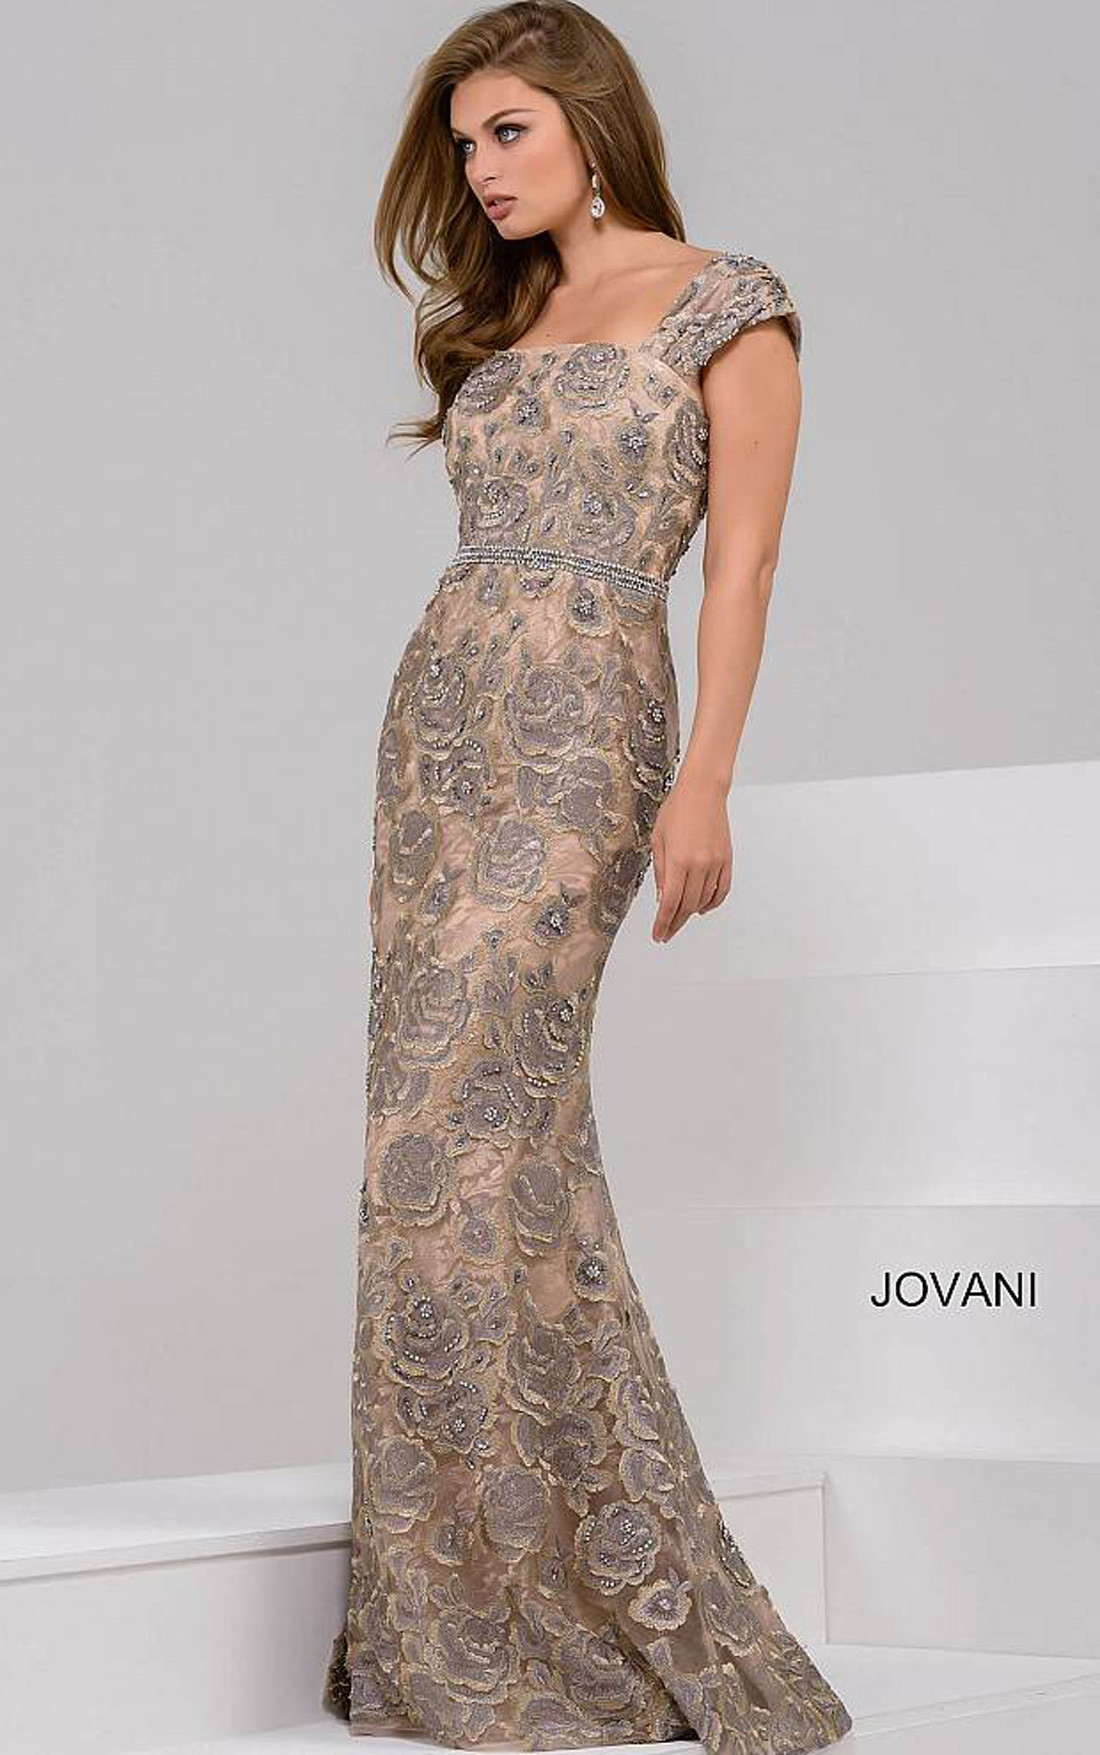 Jovani - Grey Beaded Lace Floral Fitted Dress (48121)